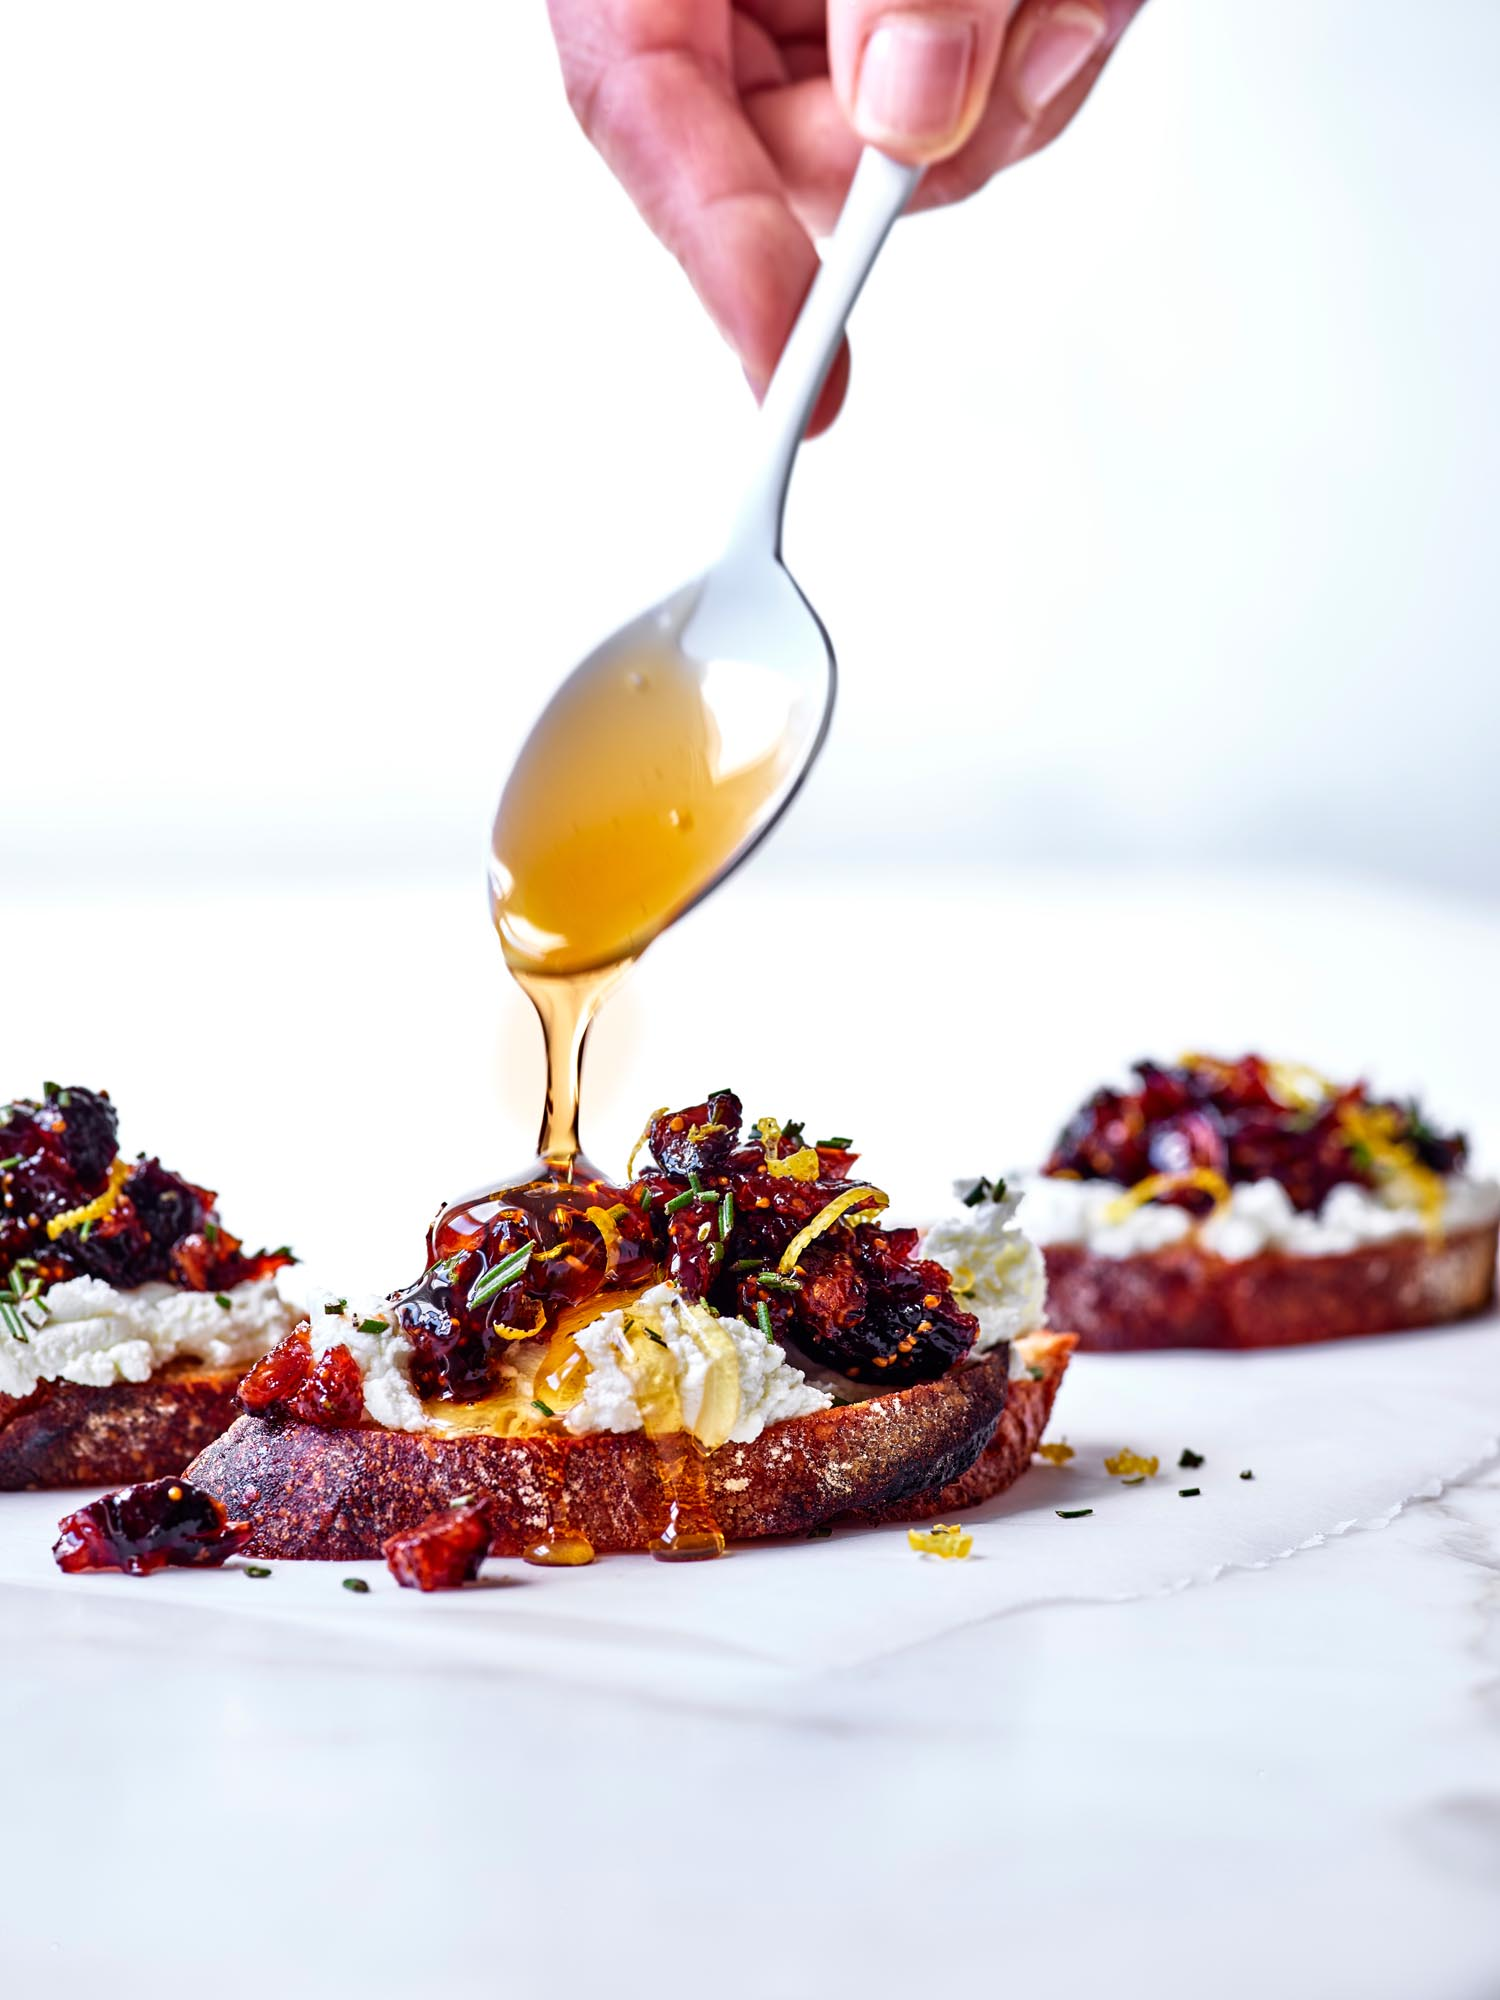 Goat_Cheese_Crostini_v2_30869_Cuisines_rsd